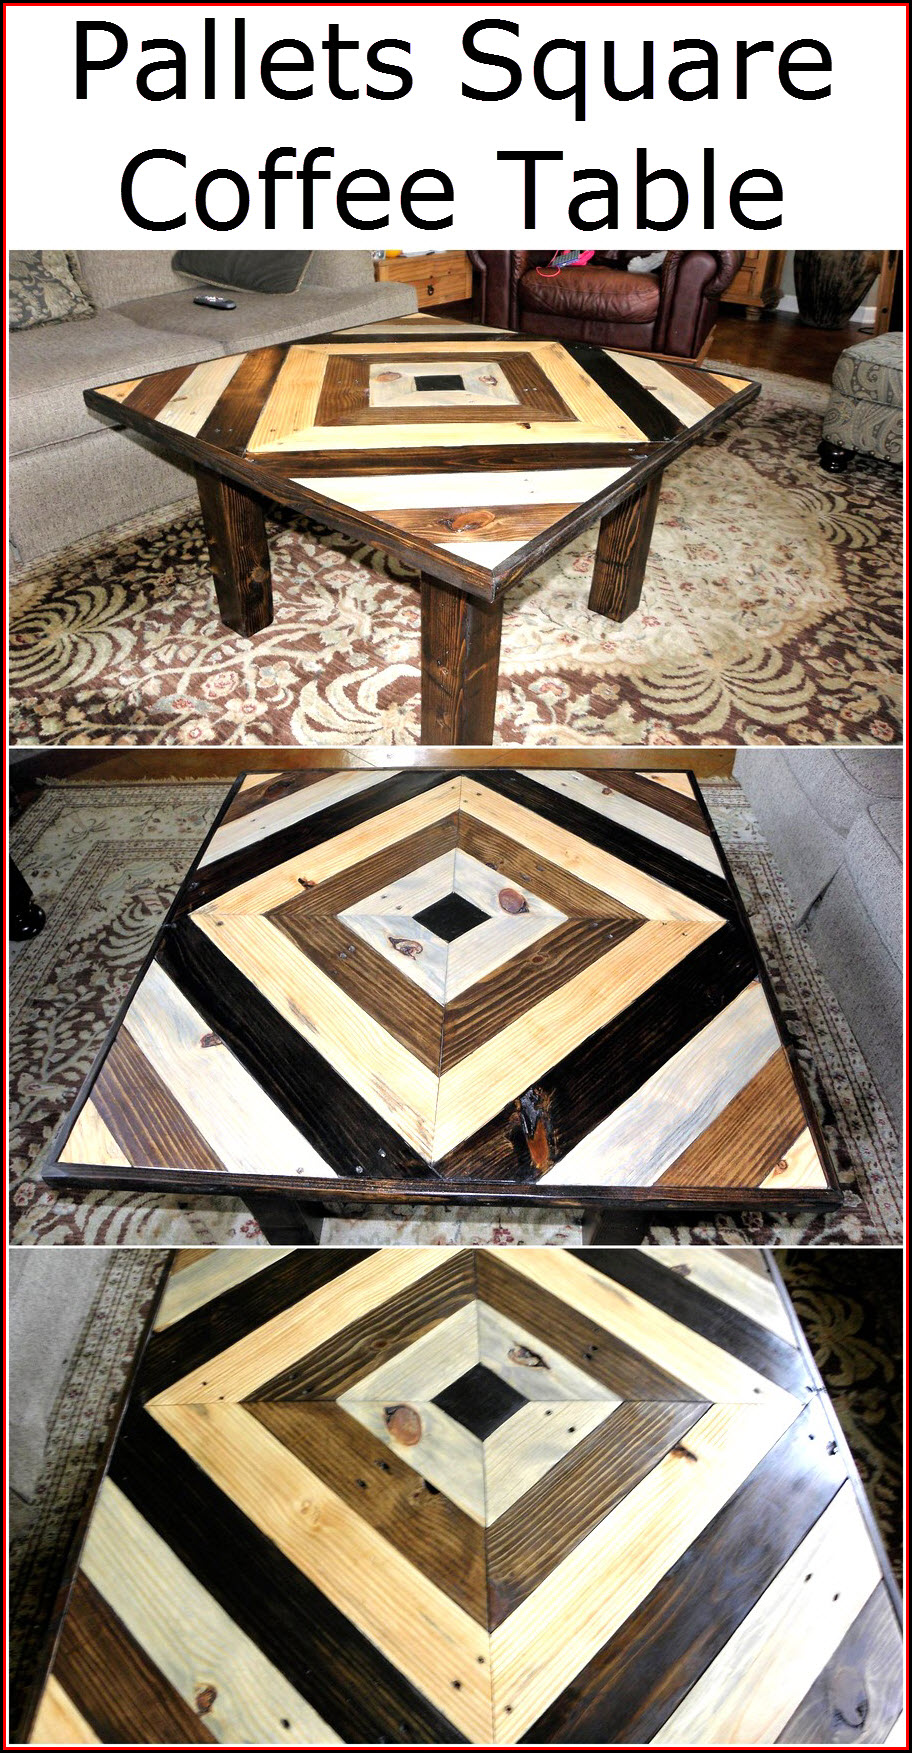 pallets-square-coffee-table